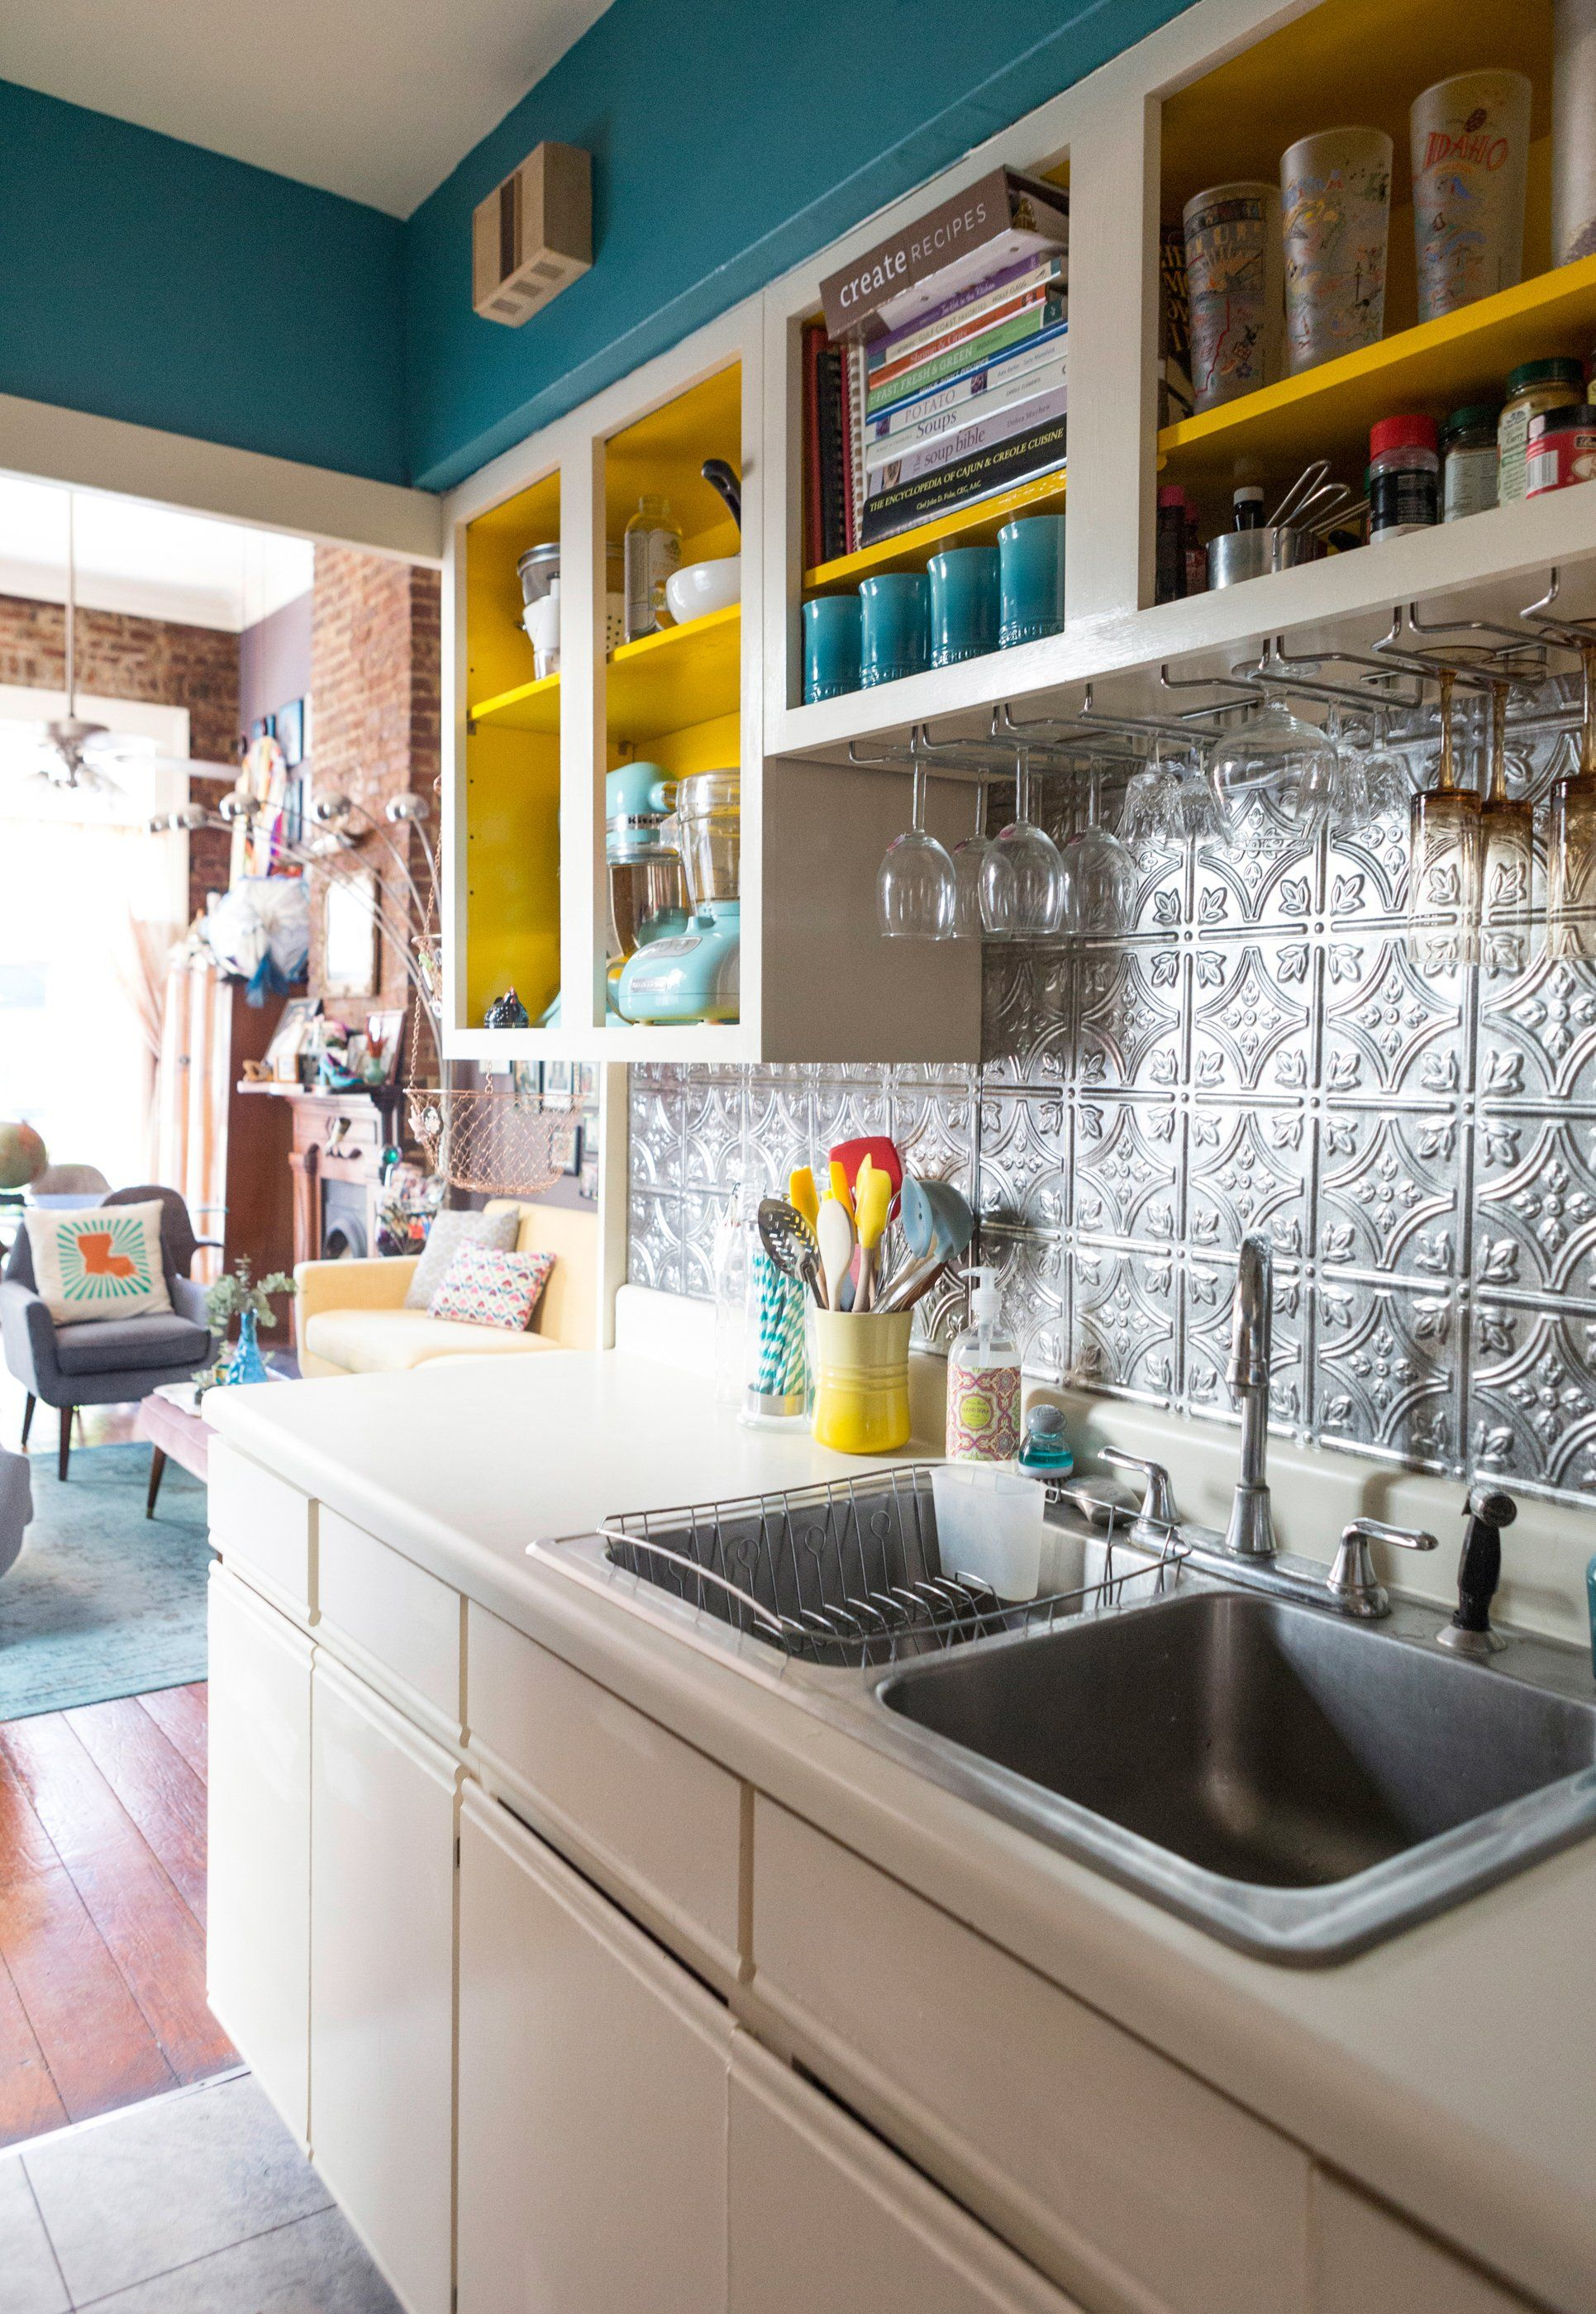 5 Common Kitchen Space Wasting Mistakes And How To Quickly Fix